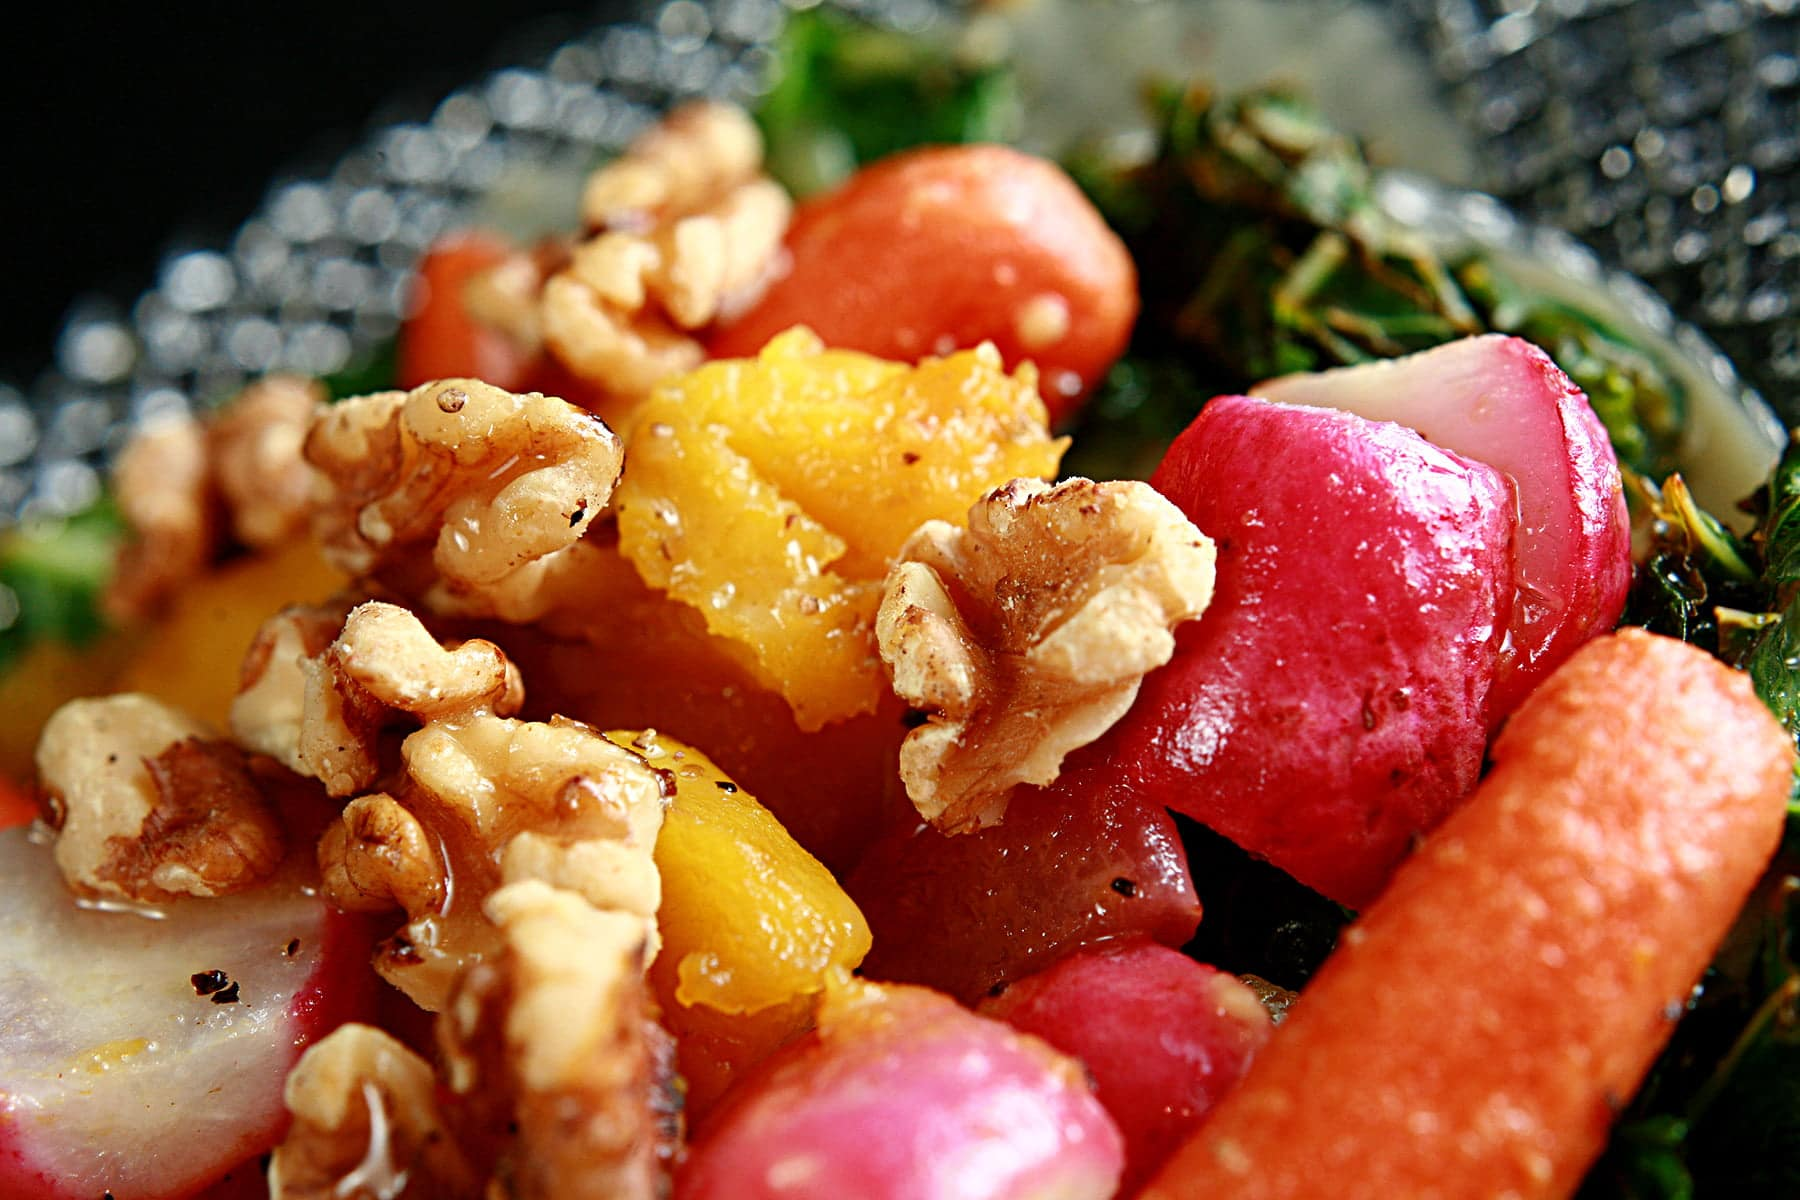 Roasted Radish Salad on a glass plate. Roasted radishes, baby carrots, and squash are served on a base of crispy kale, and topped with a dijon vinaigrette and walnuts.